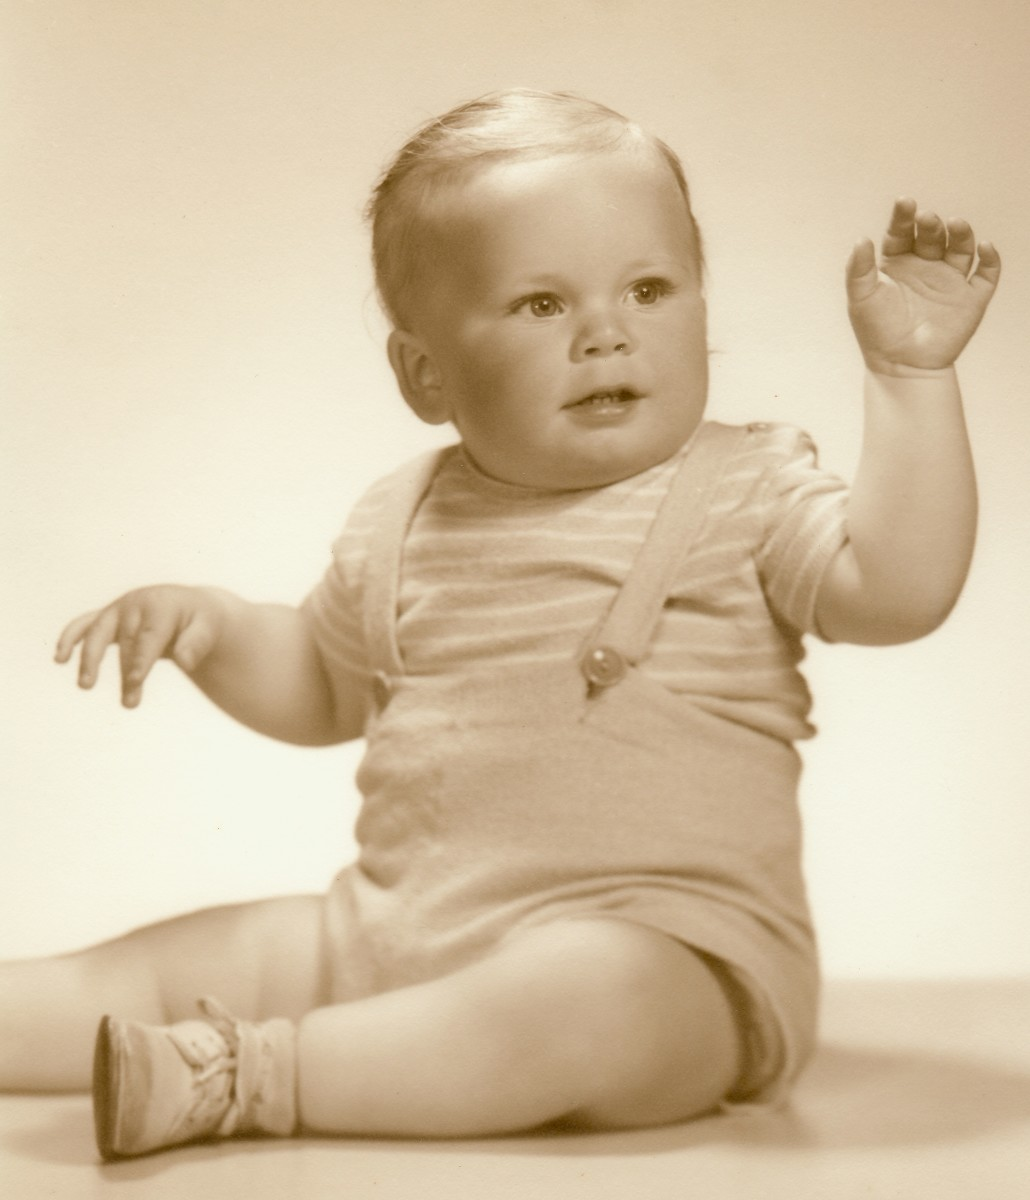 My brother Johnny as he was called back then.